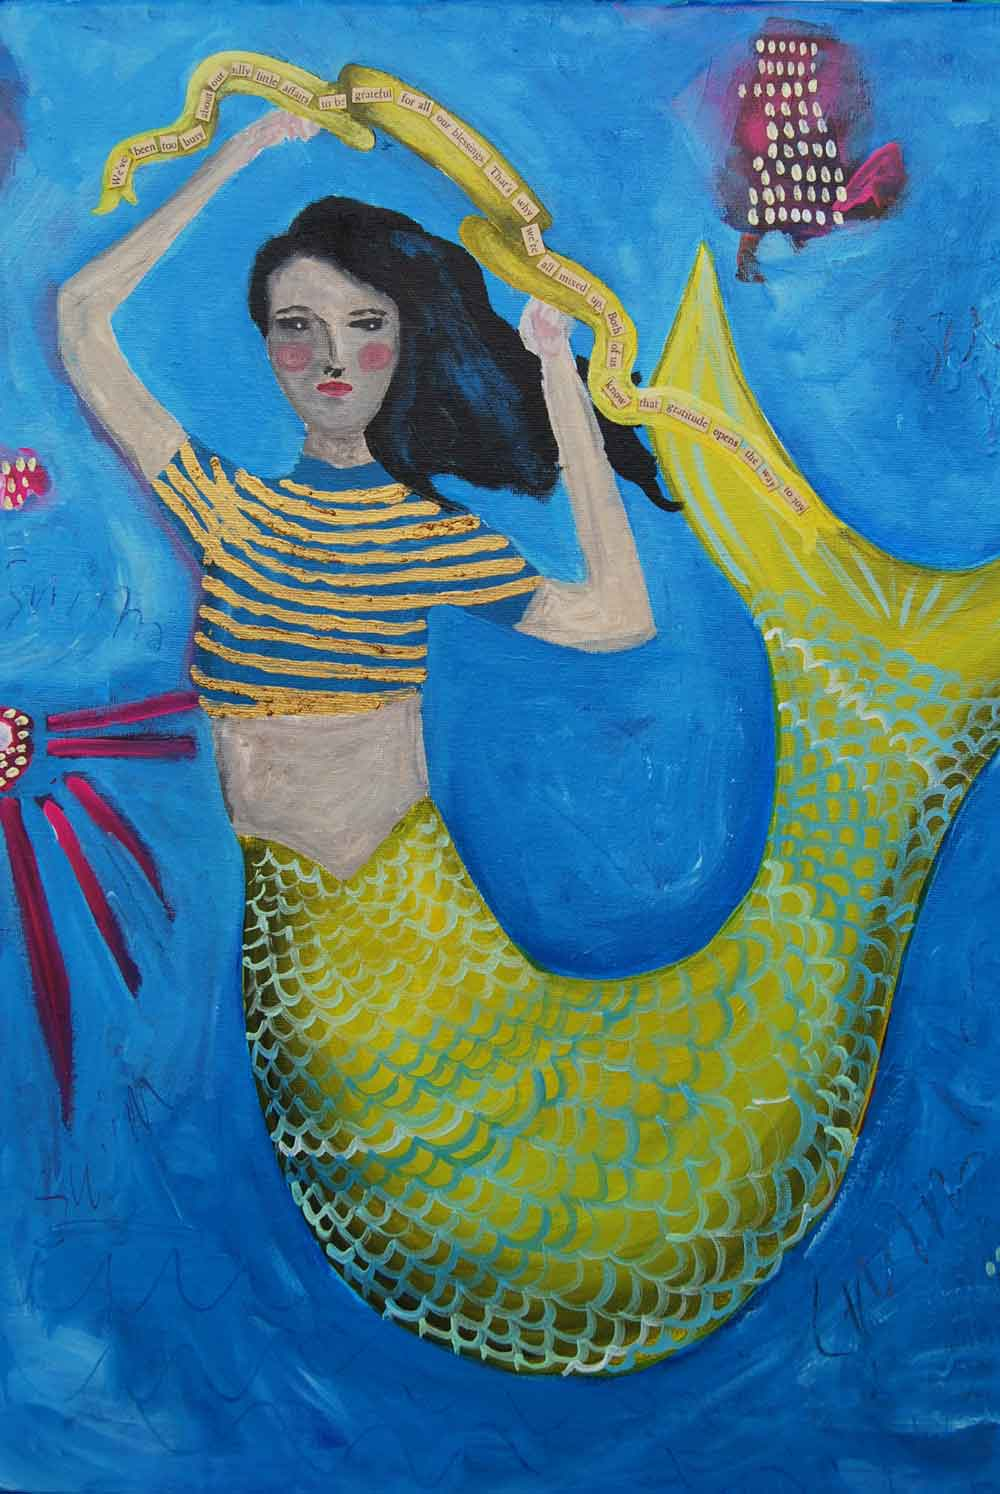 THE MERMAIDS COLLECTION   Art that inspires imagination and awareness of our oceans.